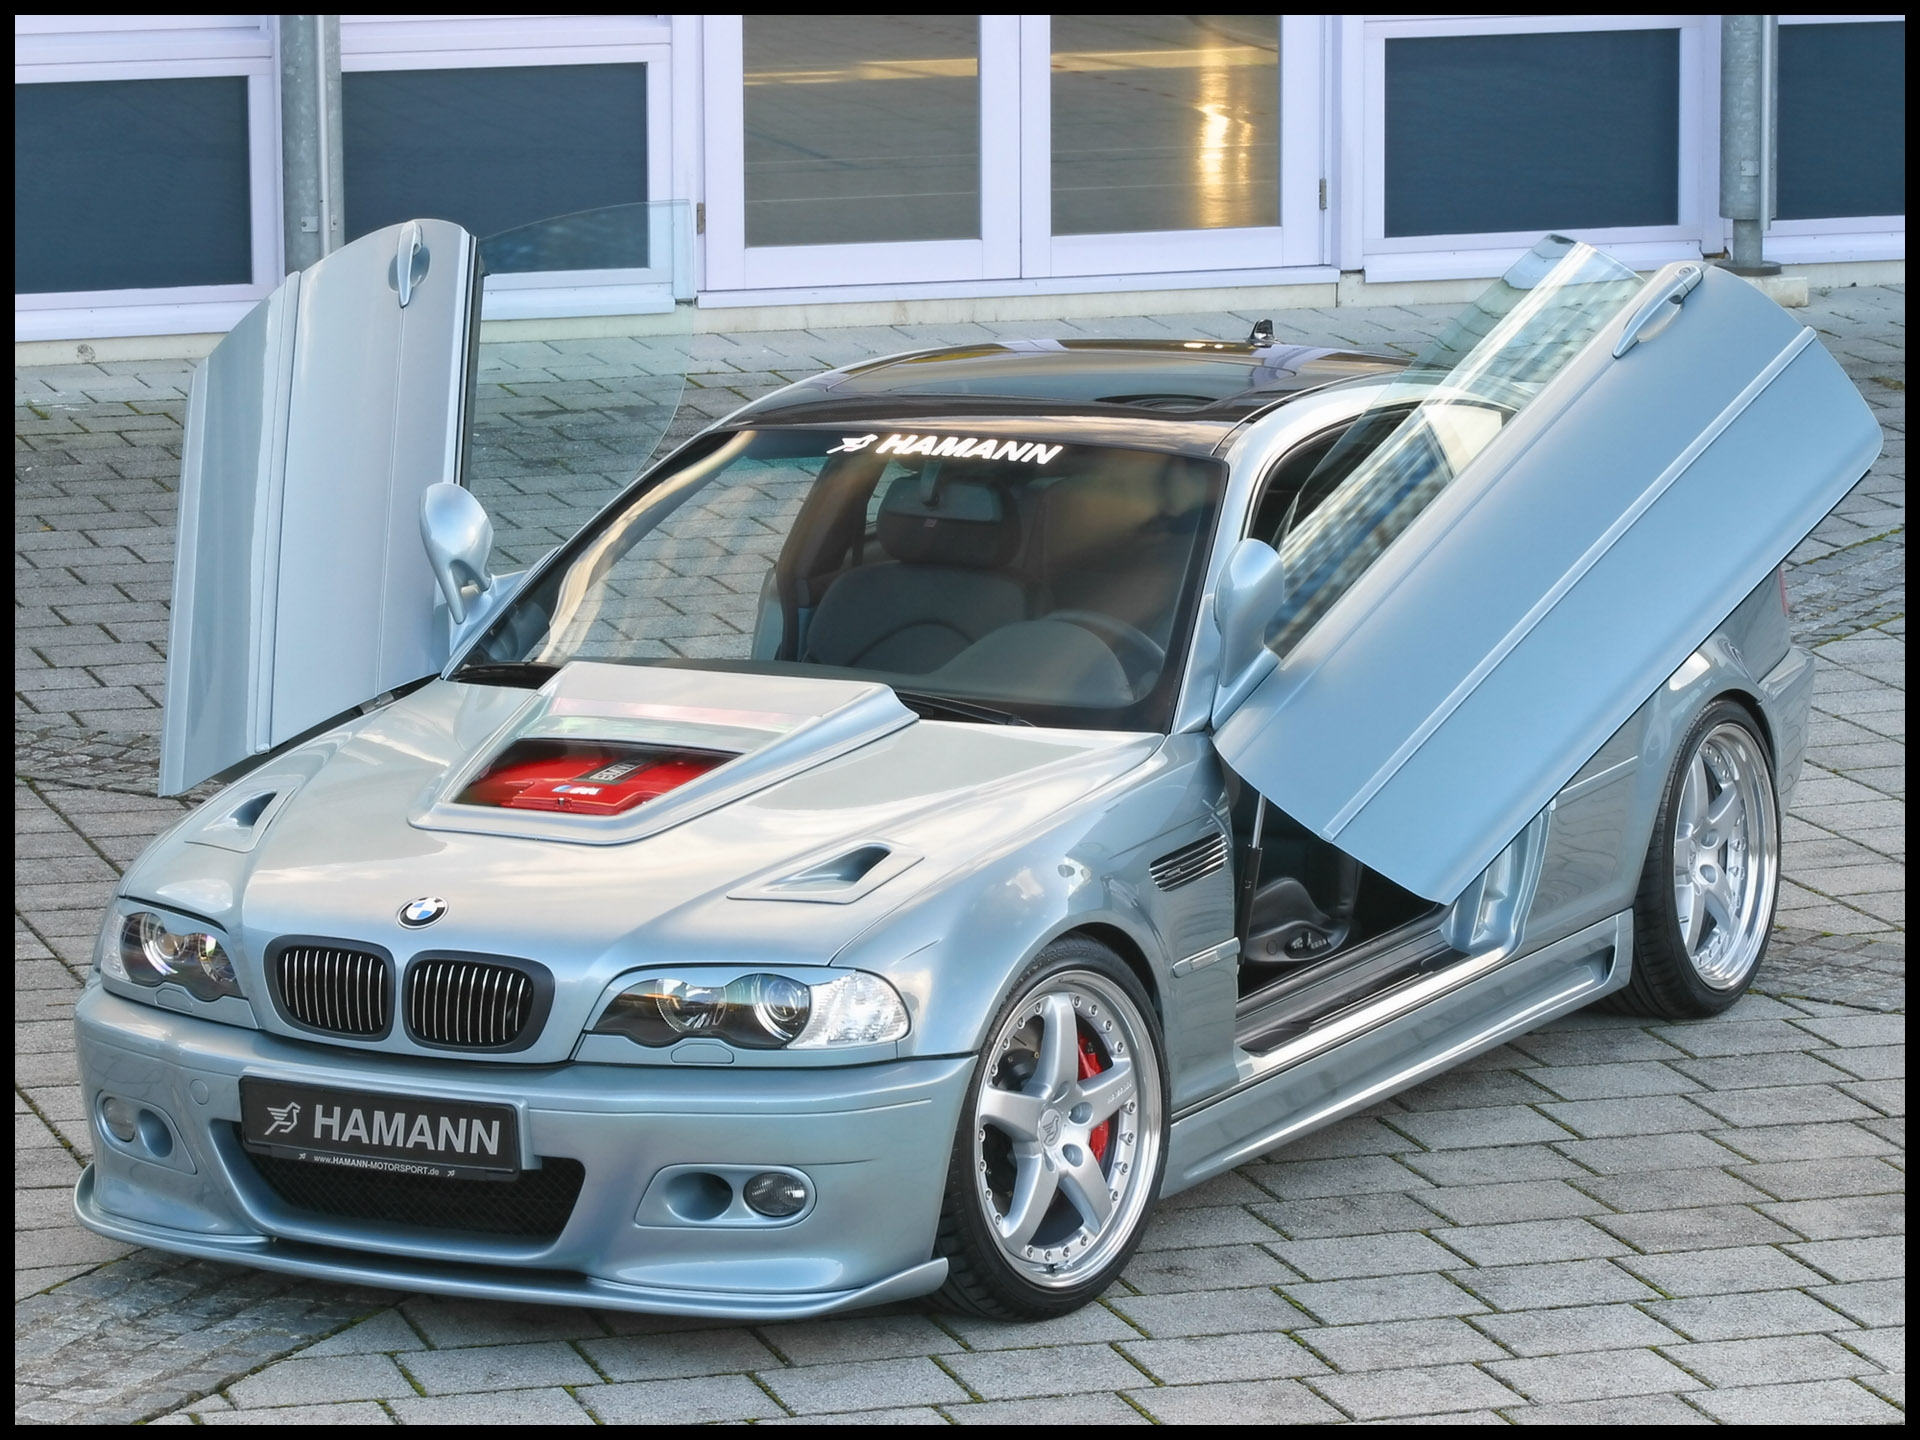 BMW Hamann Las Vegas Wings Front Angle Top Open Doors Wallpaper